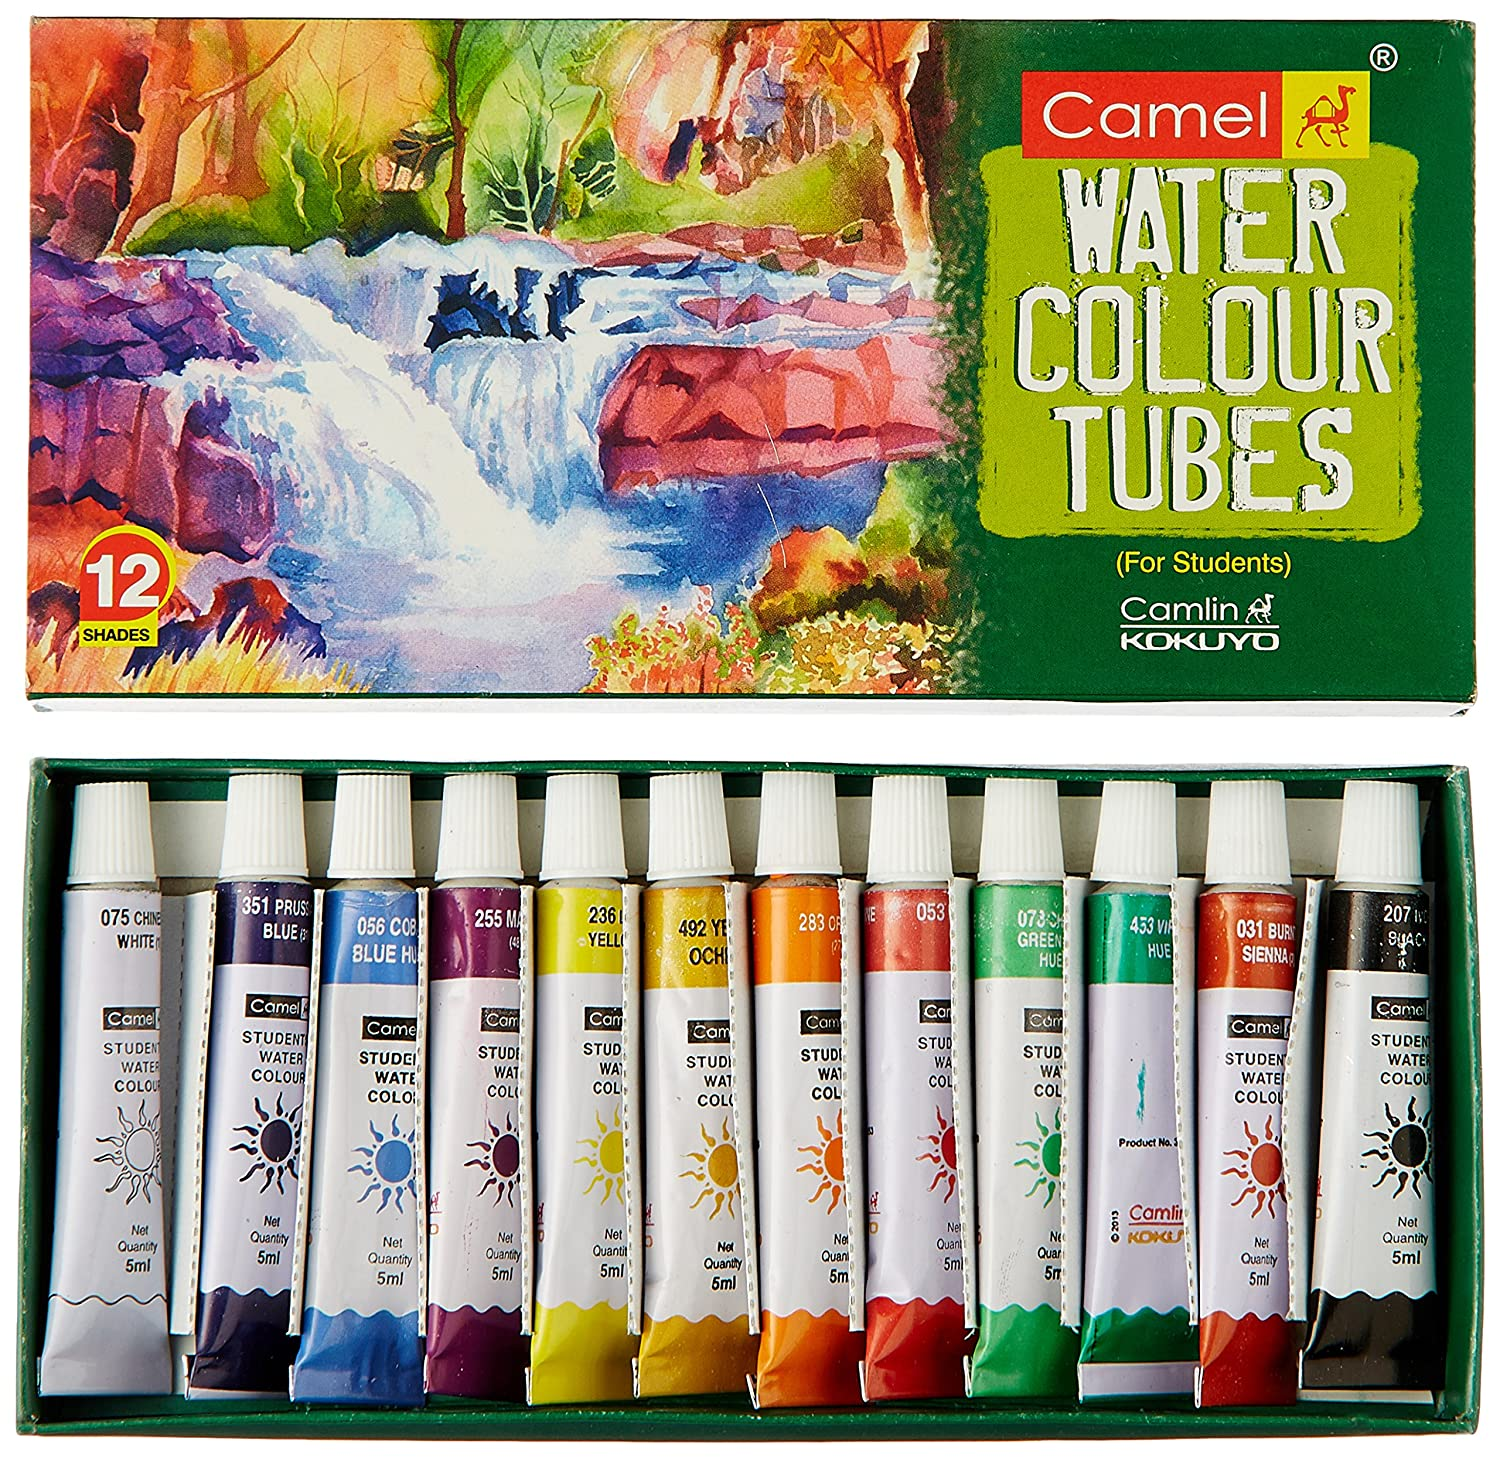 Camel Student Water Color Tube - 5Ml Each, 12 Shades Kokuyo Camlin Limited 3604502